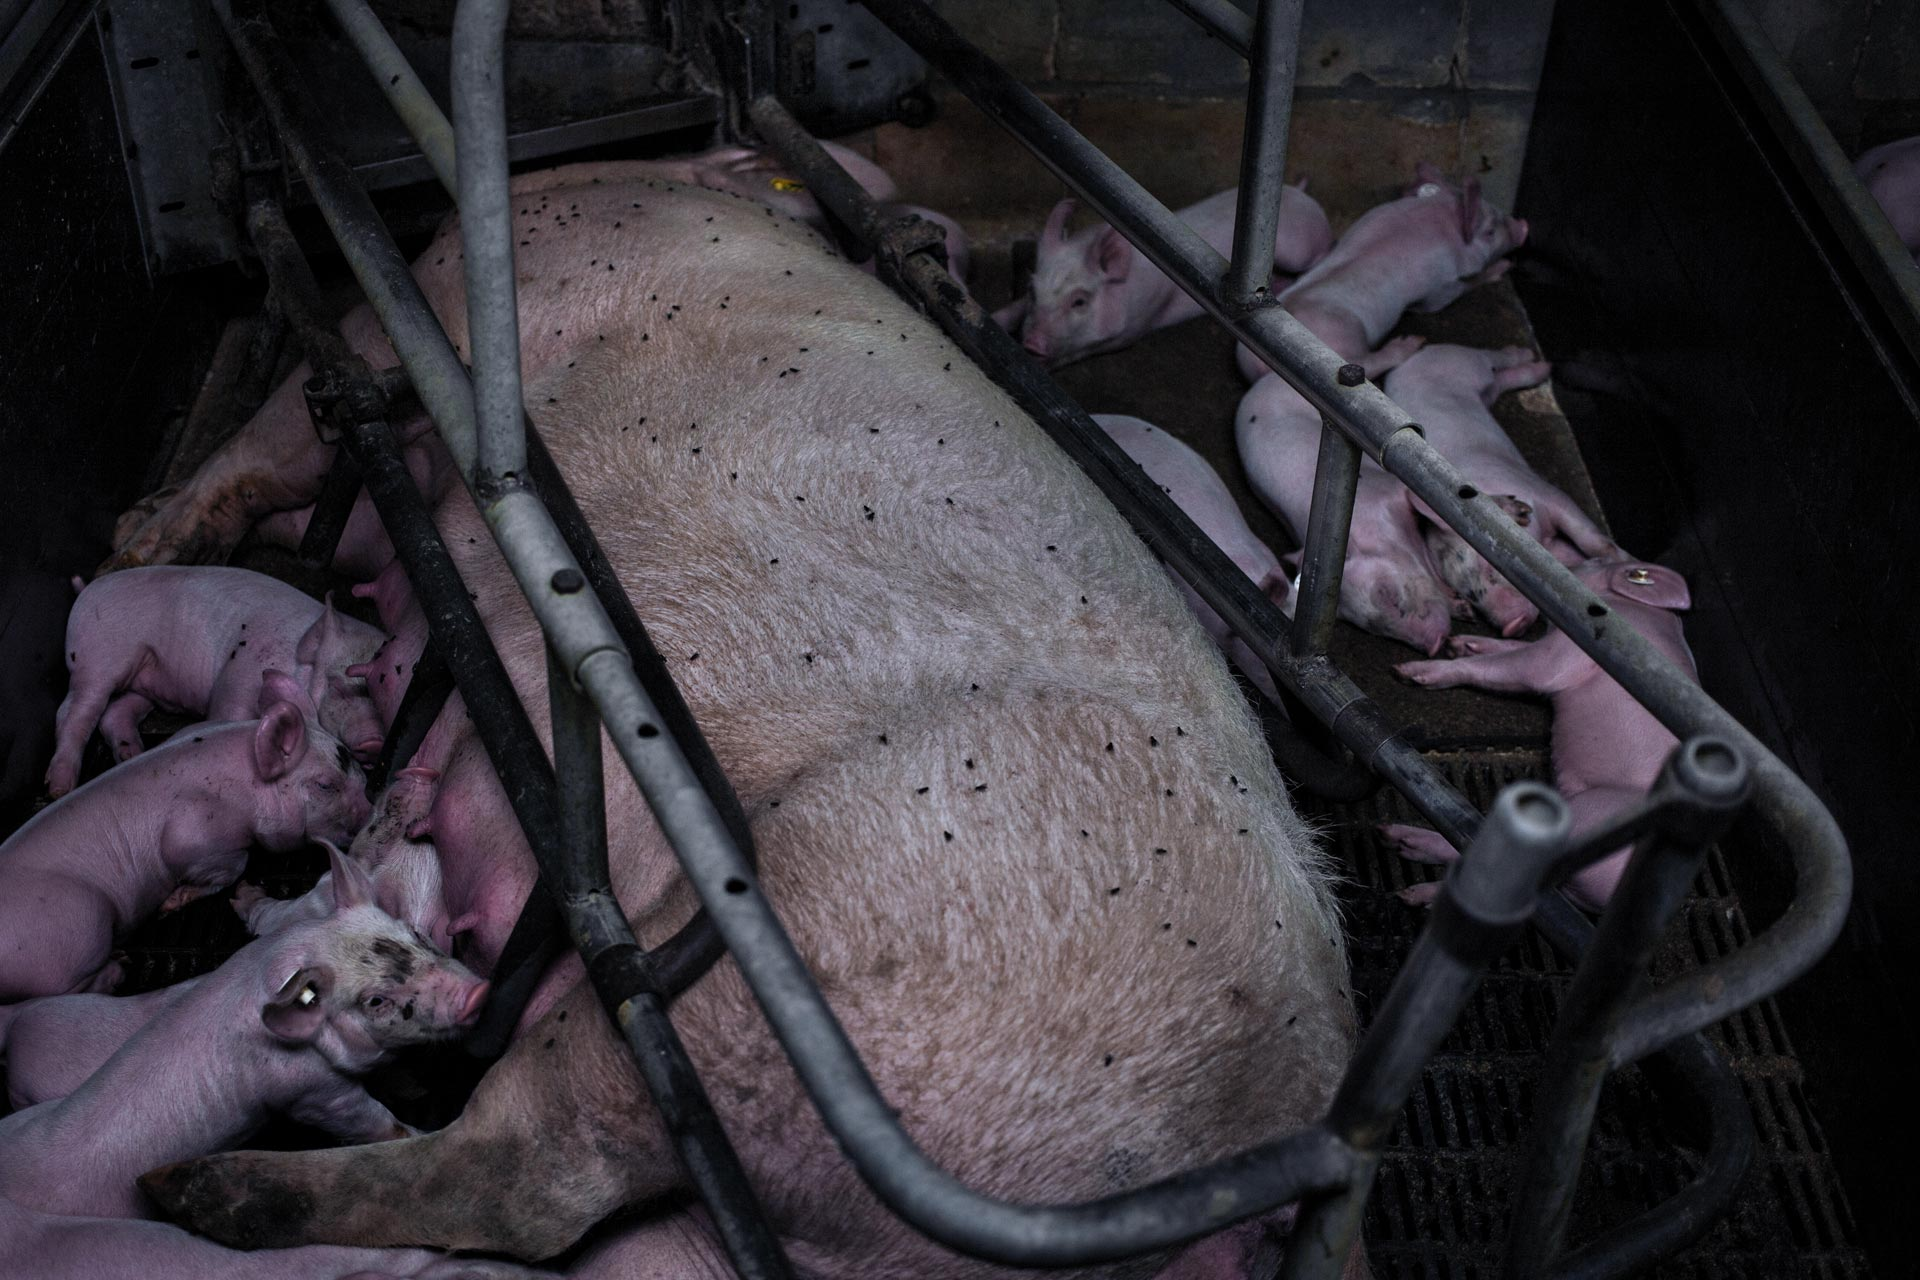 timo-stammberger-massentierhaltung-mastanlage-factory-farming-schweine-pigs-animal-rights_13